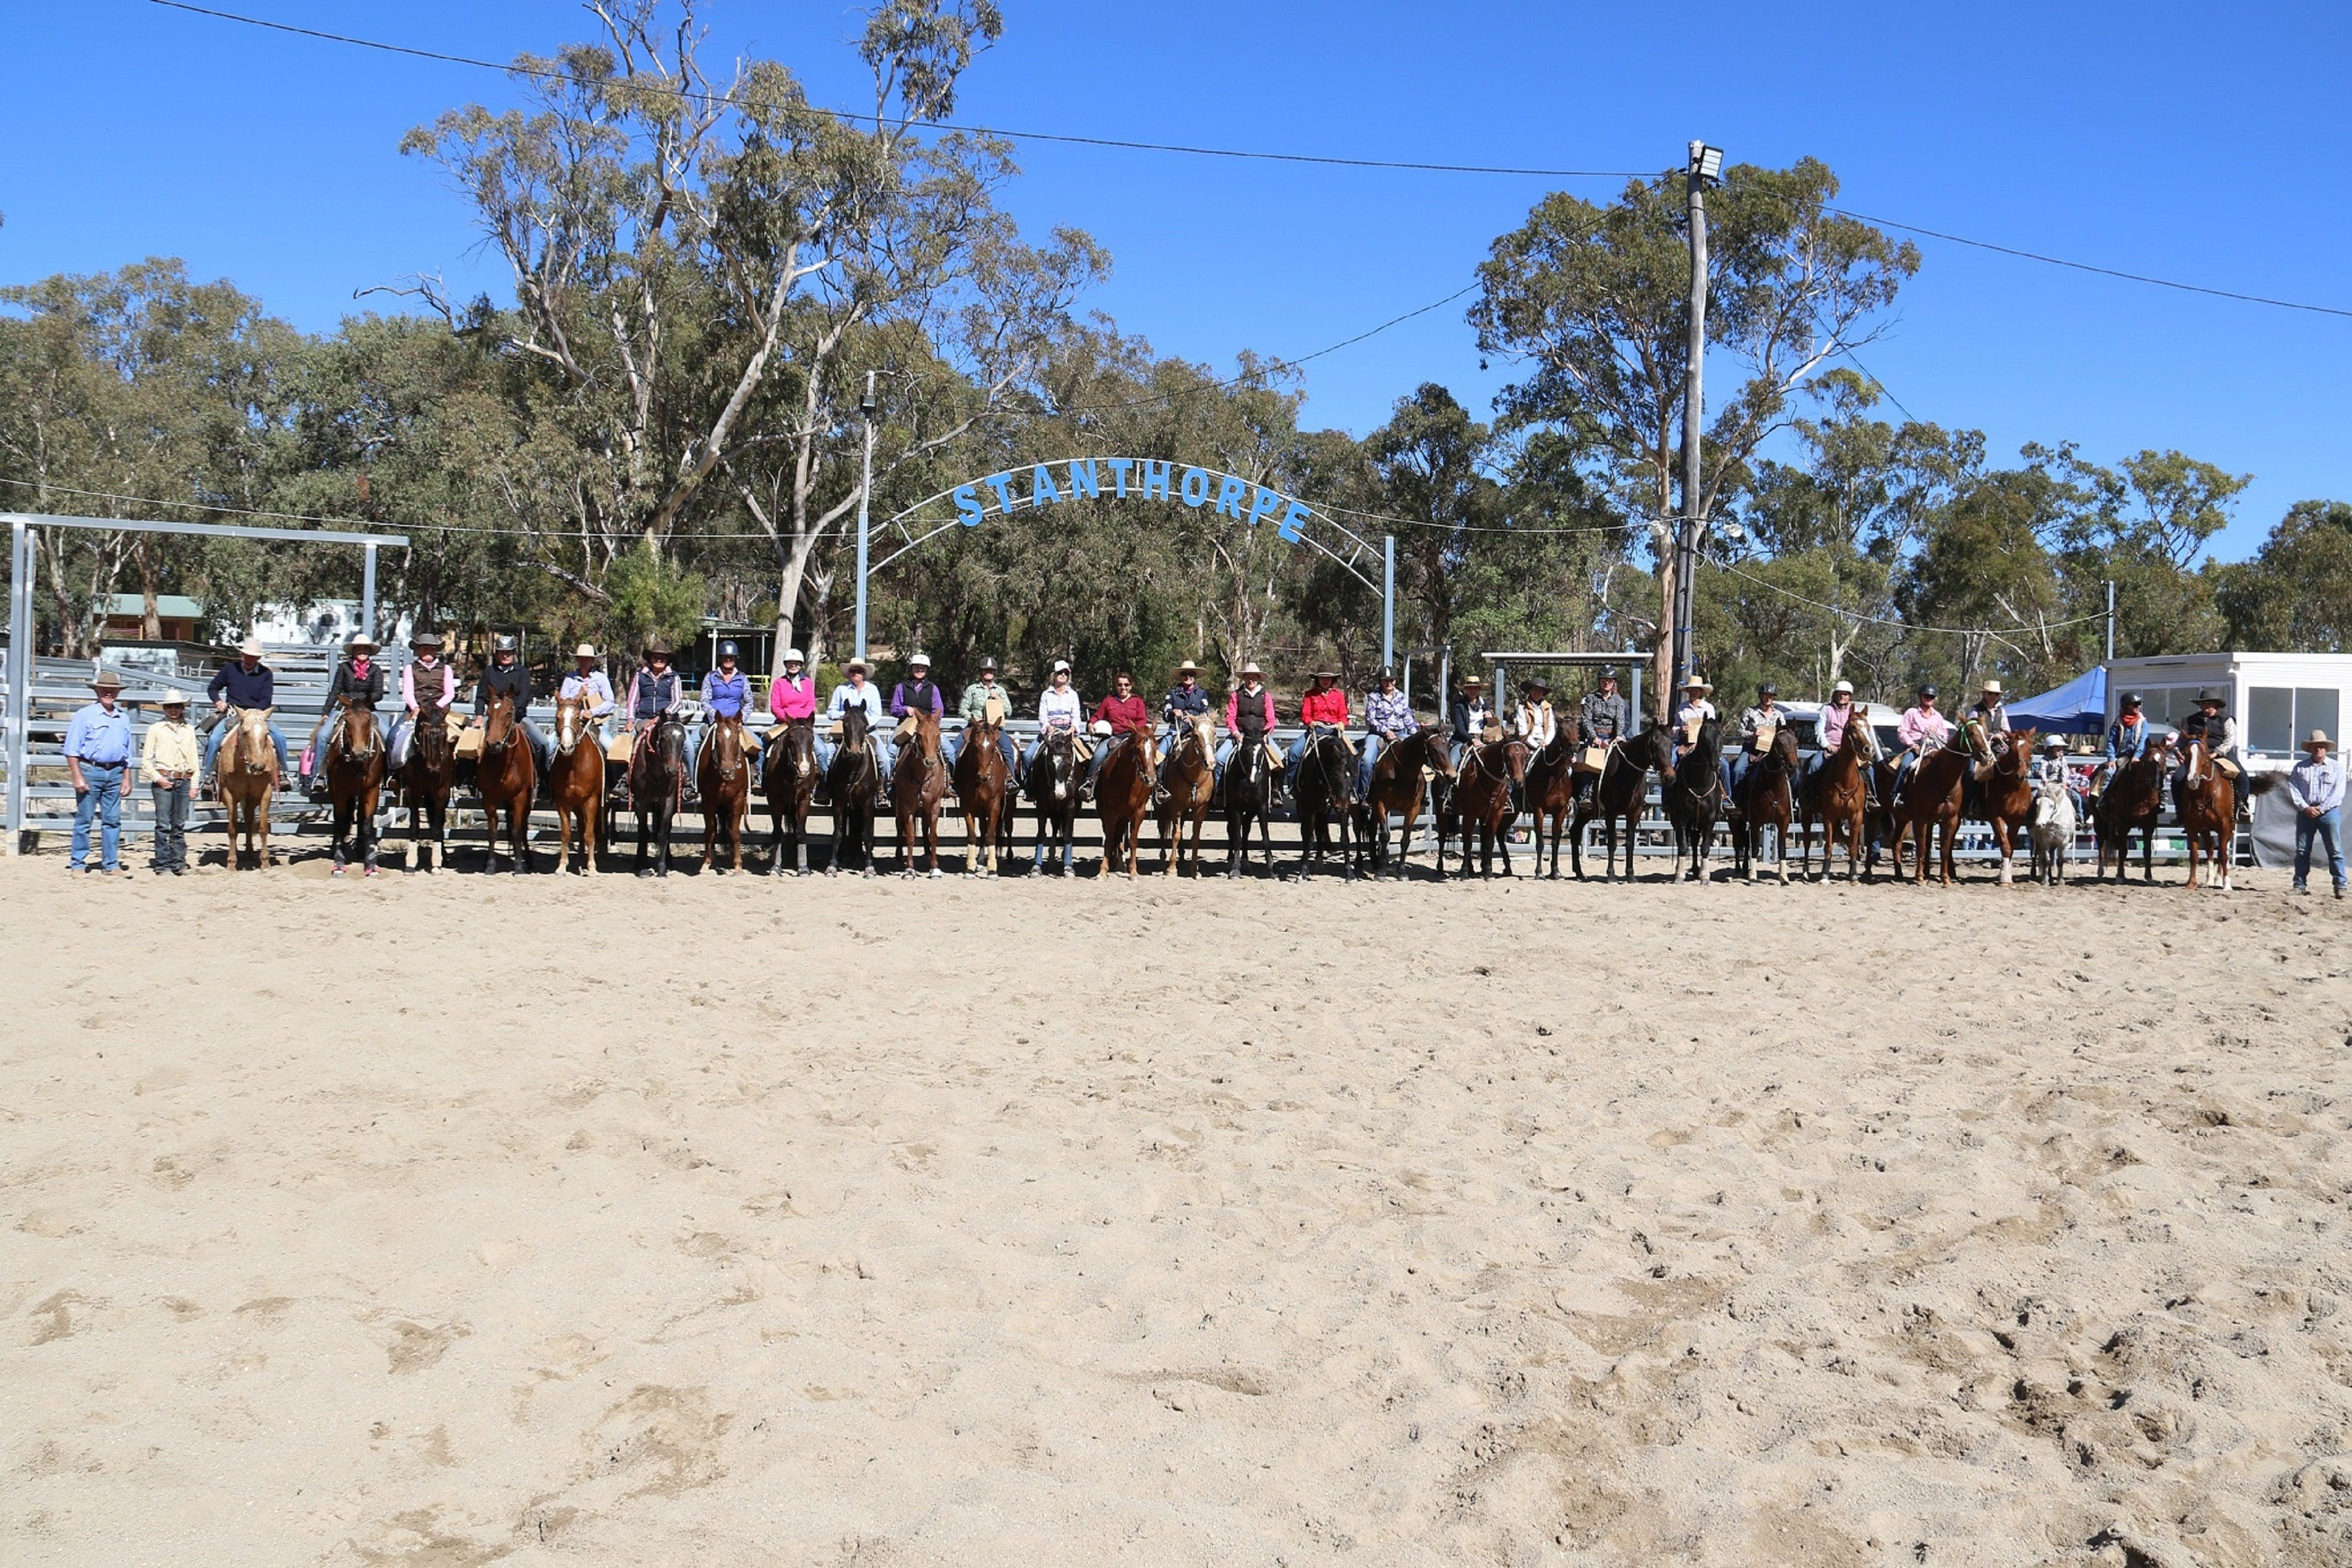 Australian Campdraft Association National Finals Campdraft 2021 - Bundaberg Accommodation